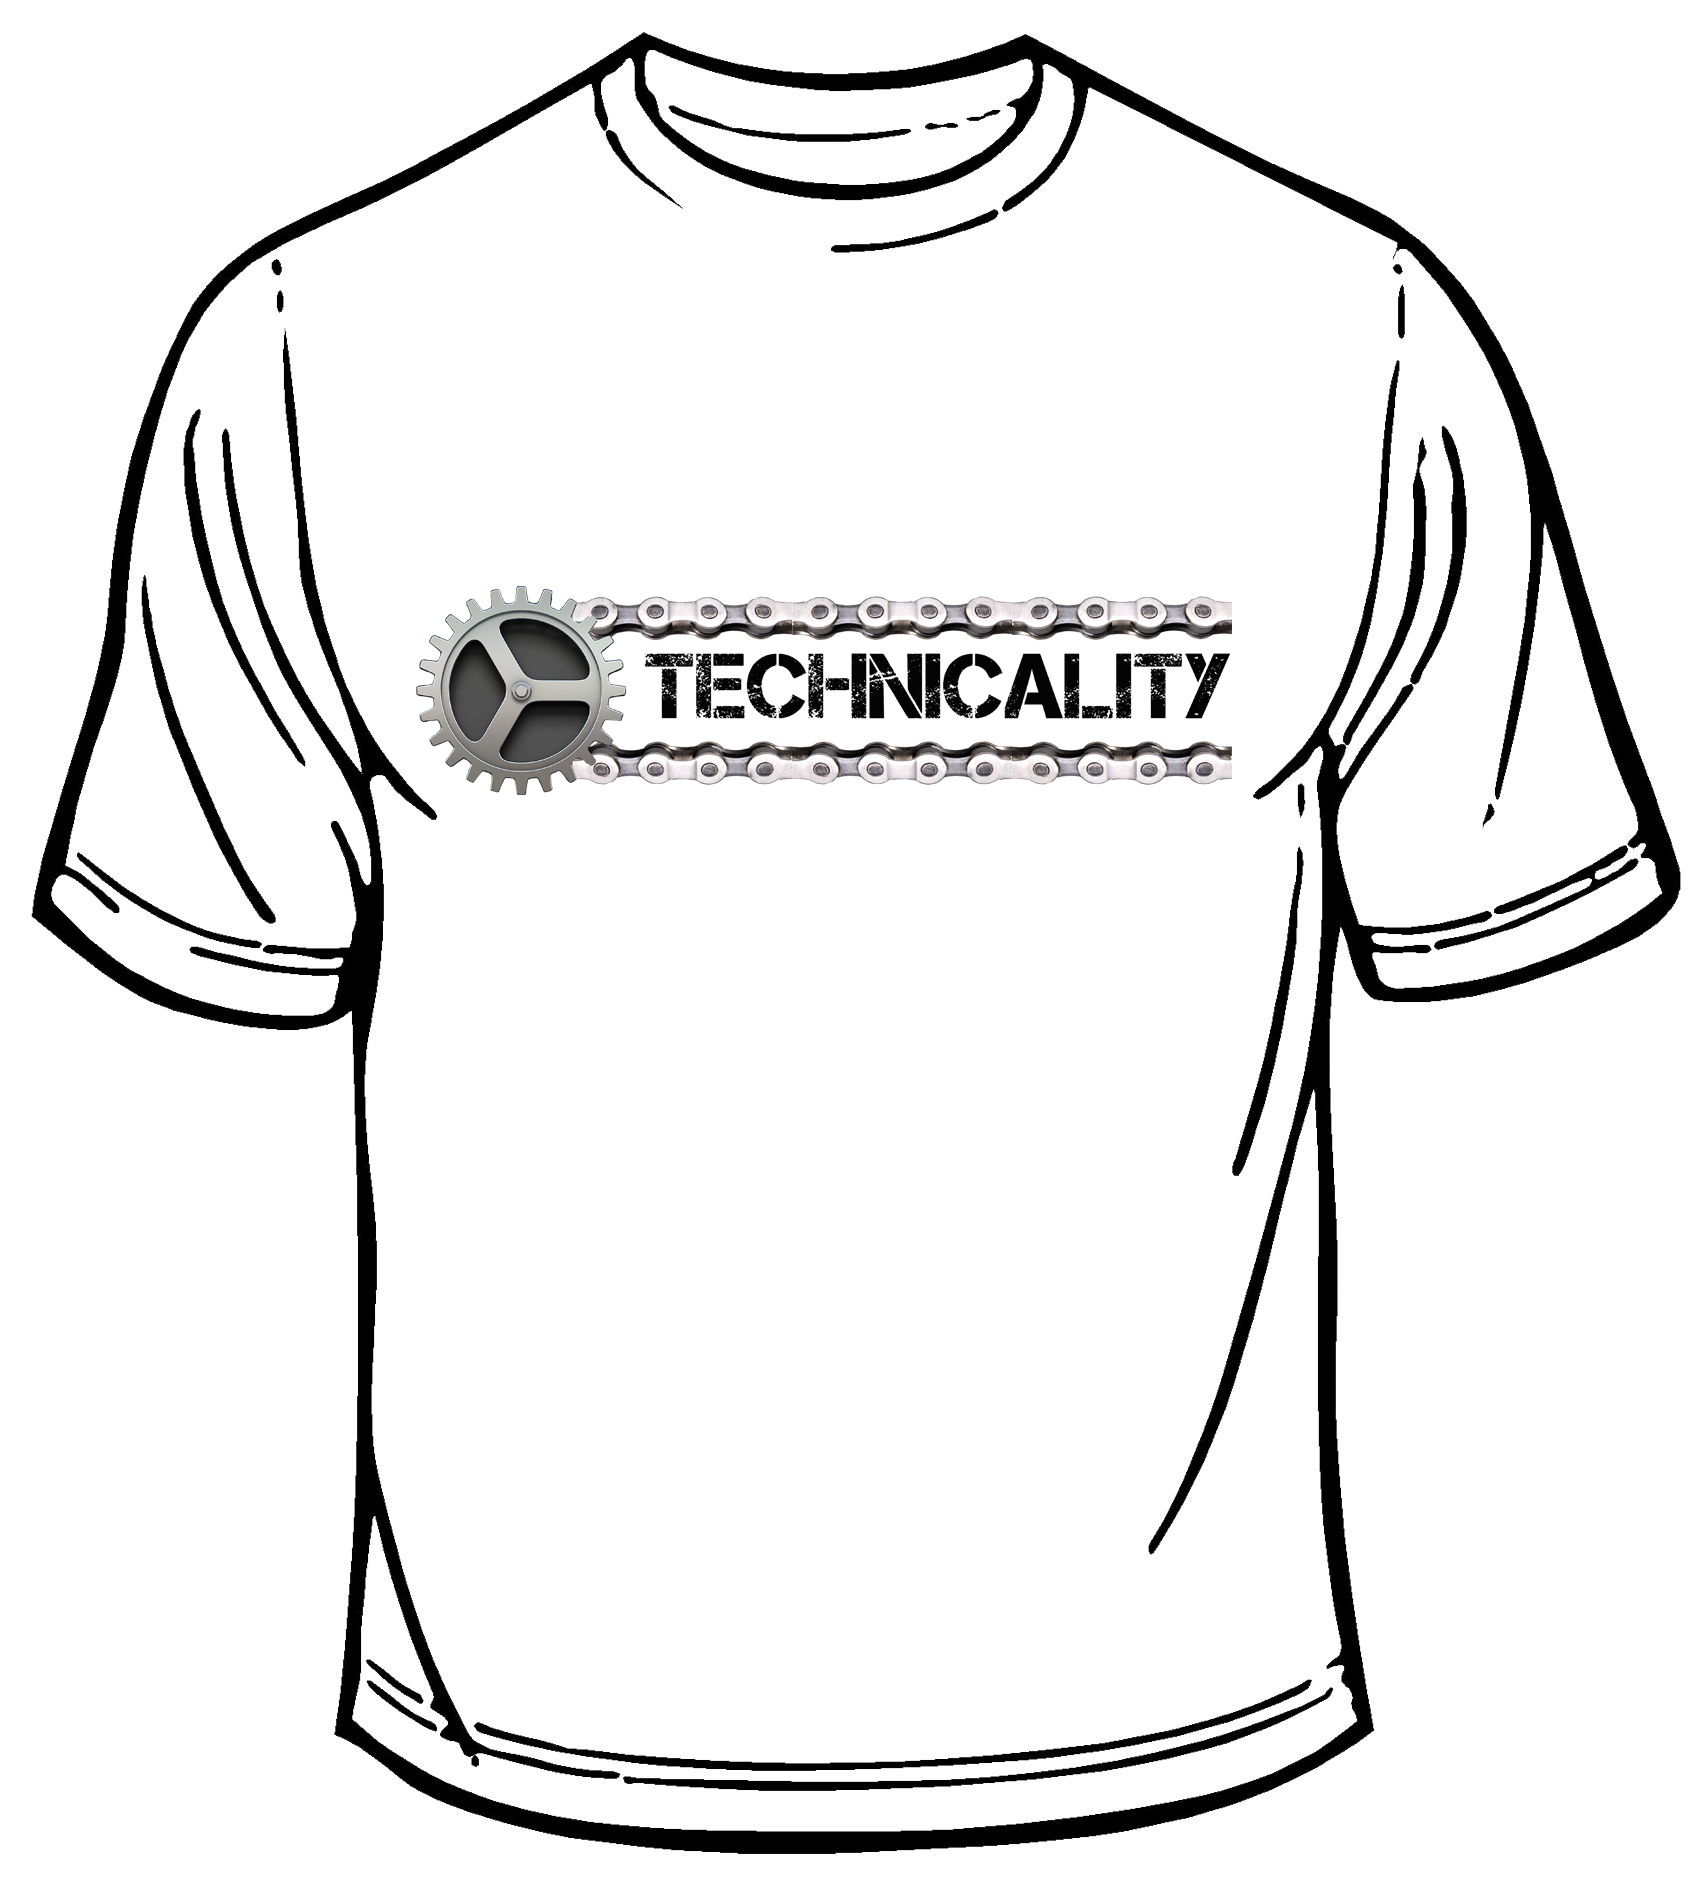 Shirt design course - This Was My First Assignment Through Doing My Hnd Graphic Design Course Which We Had To Produce T Shirt Design S Based On A Certain Culture Of Our Choice